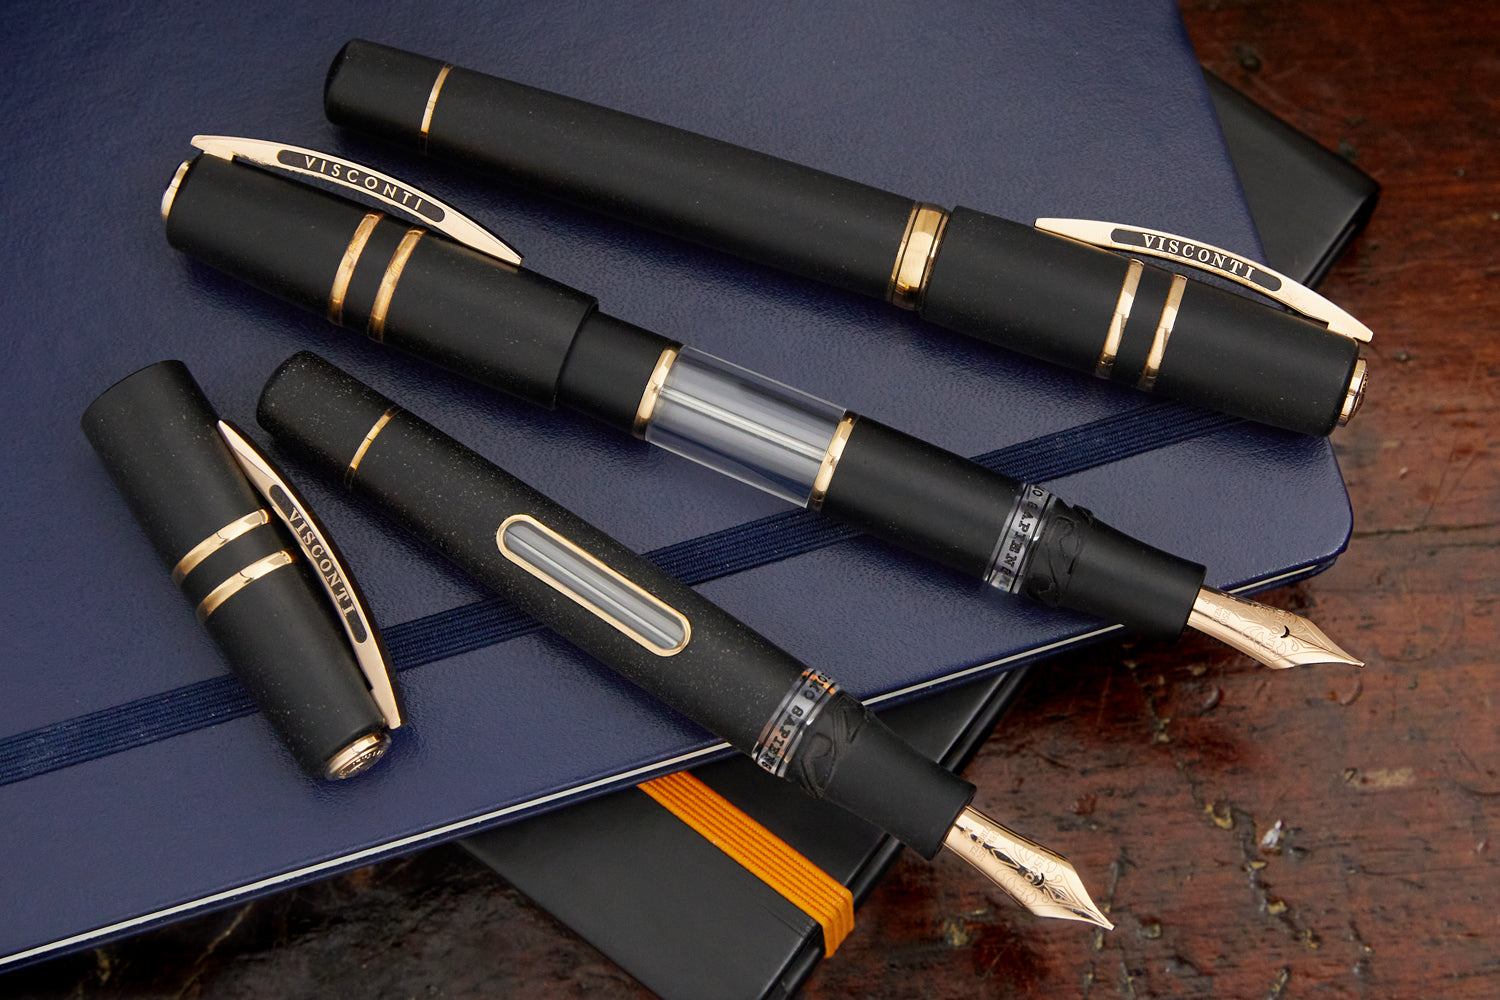 Visconti Homo Sapiens Skylight Fountain Pen - Bronze Age